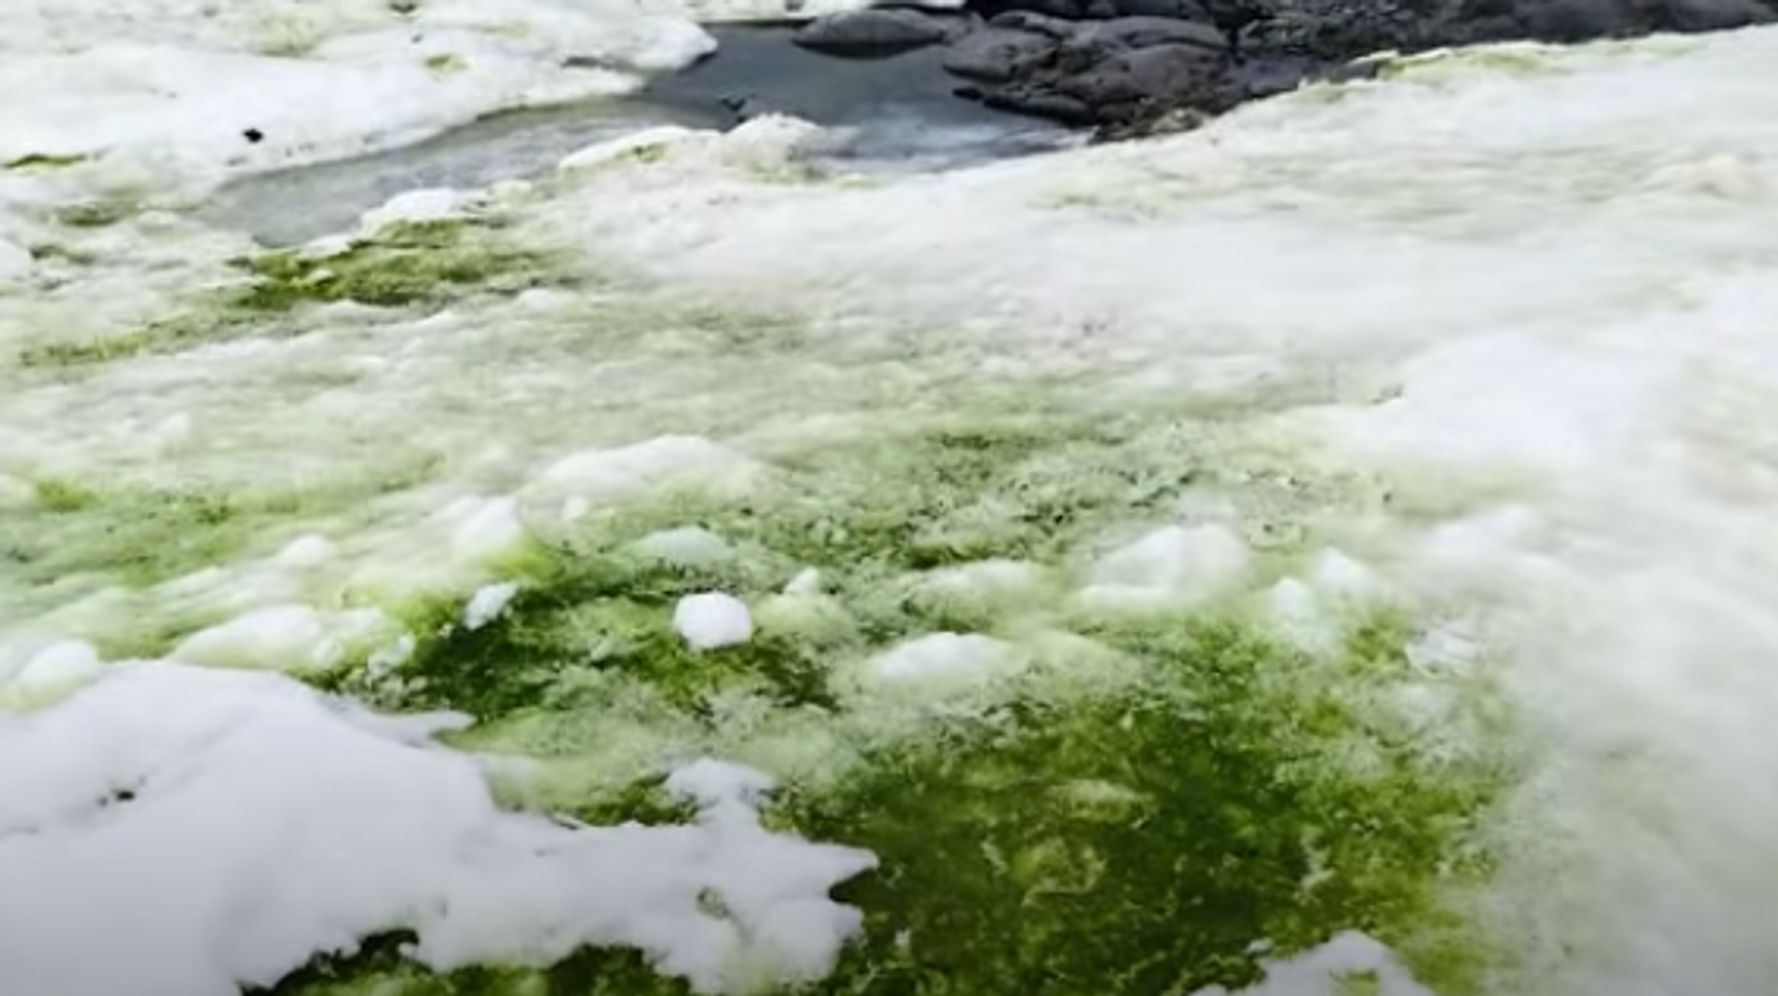 Climate Change Could Mean More Of Antarctica Turning Green With Algae - HuffPost